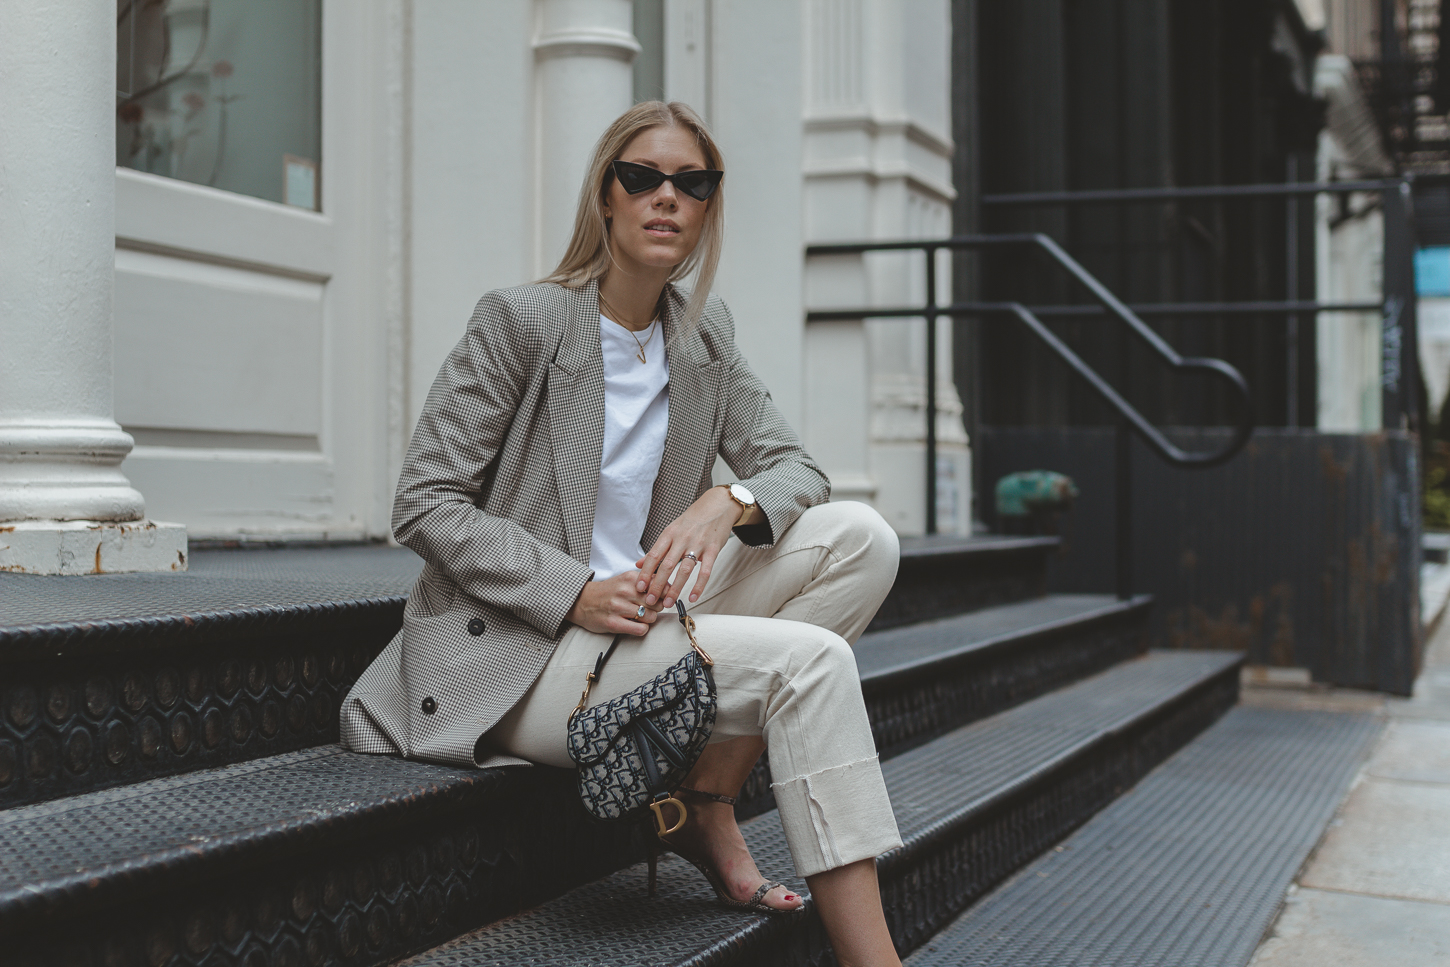 Checked blazer, Saddle bag, snake print shoes – Fall trends I